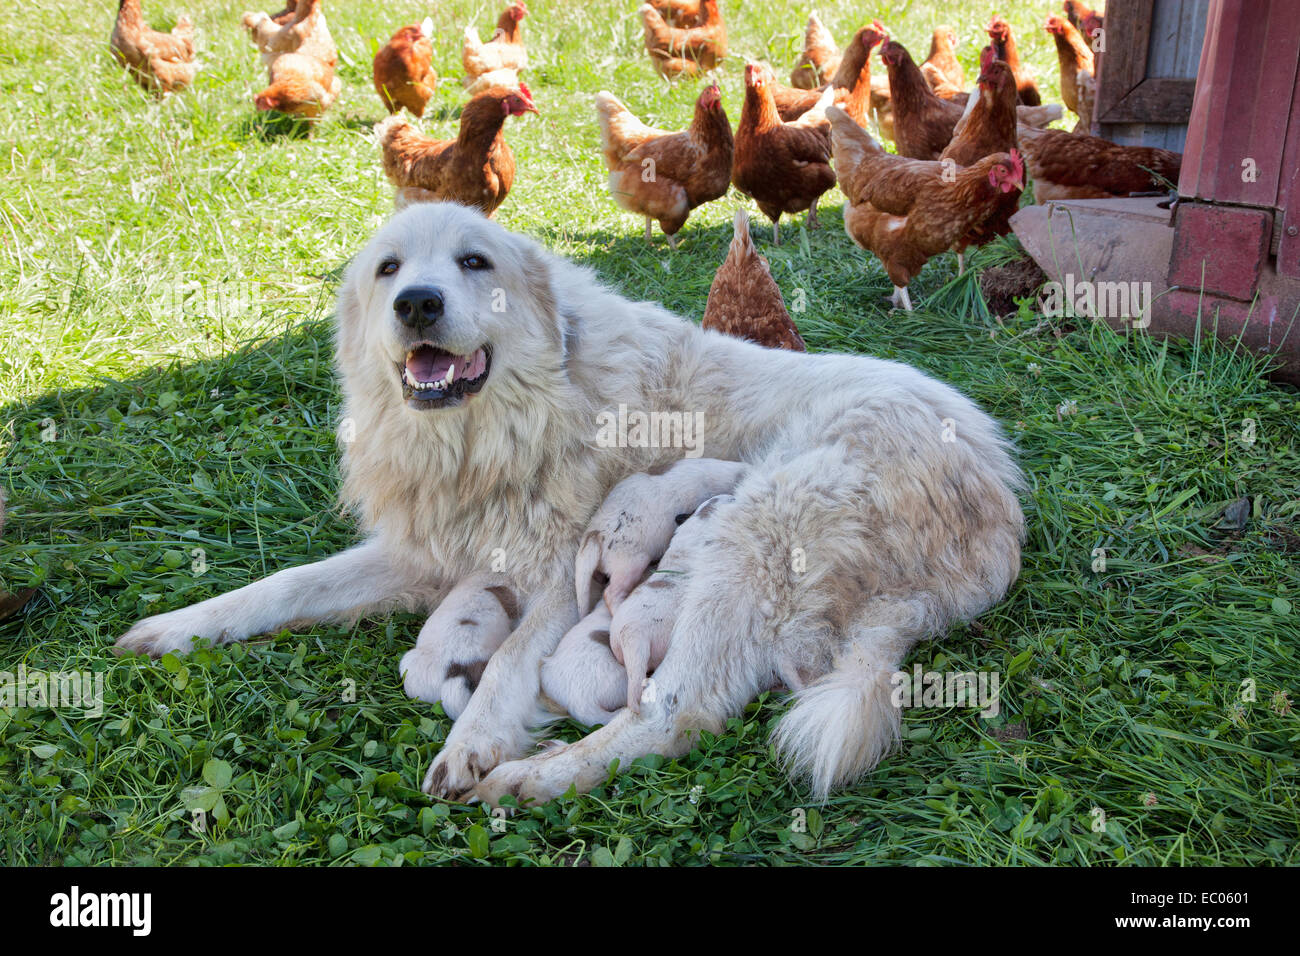 Great Pyrenees mother with one week old puppies, free roaming Eco organic chicken, free range. - Stock Image